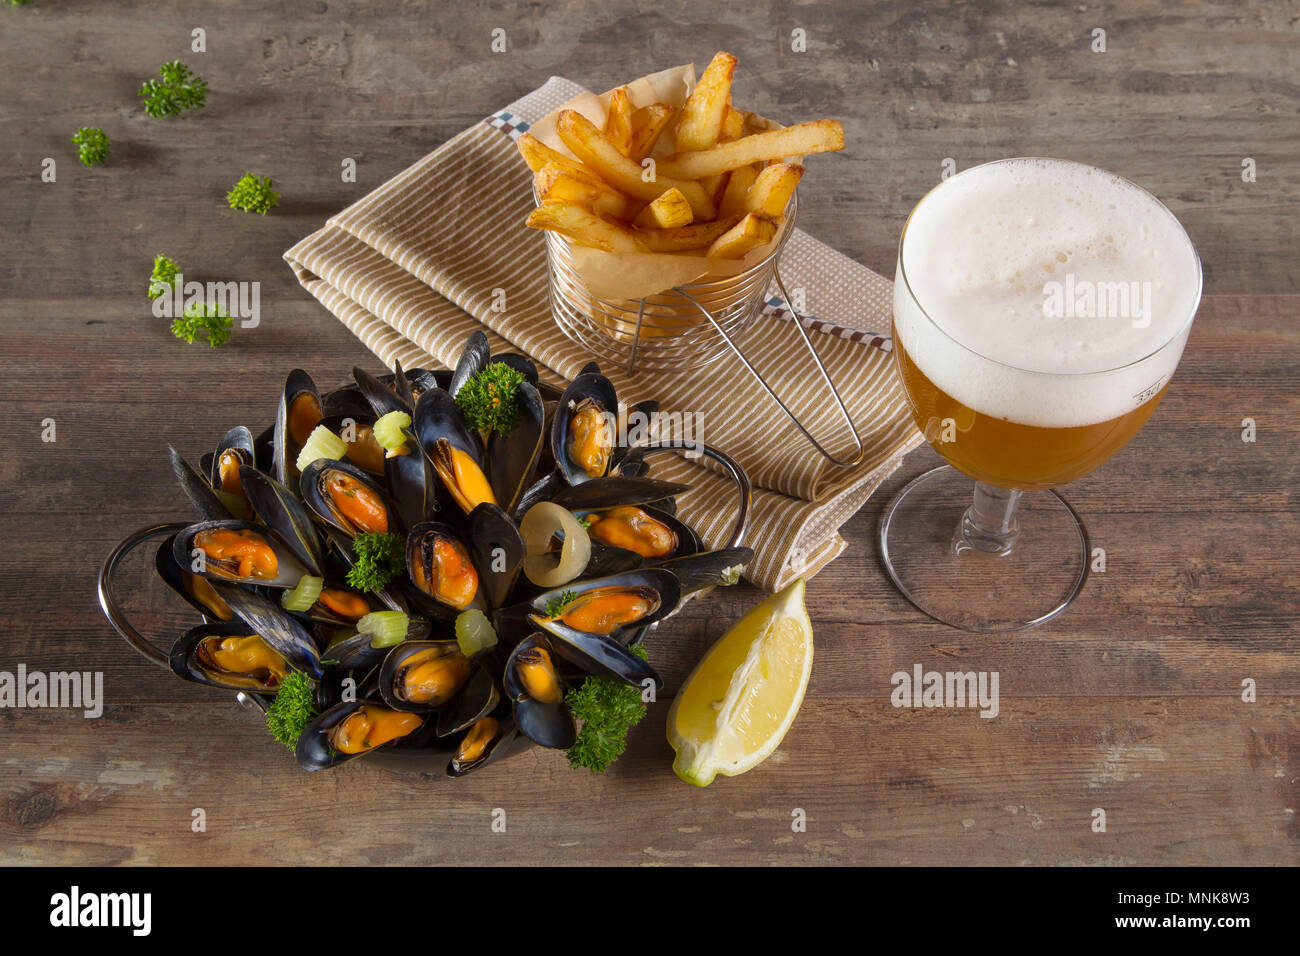 Mussels, French fries and half a pint of beer - Stock Image